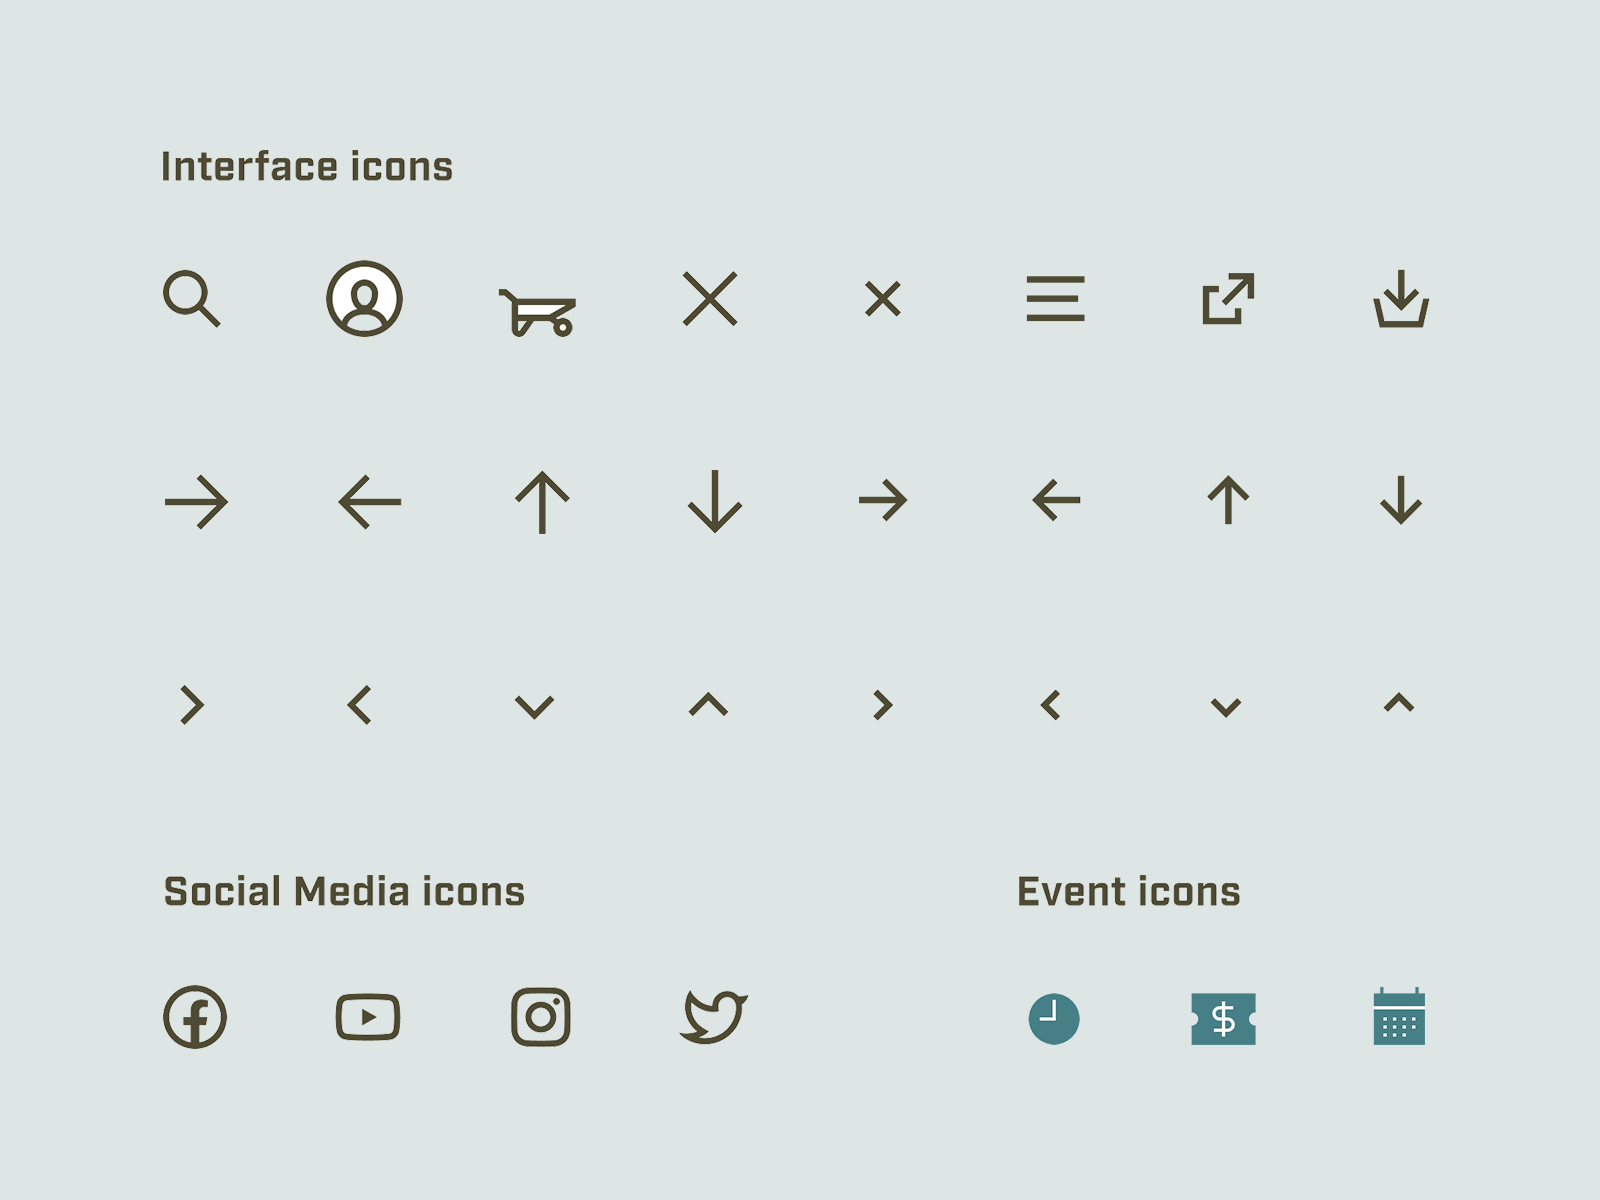 Image of custom icons for interface and social media